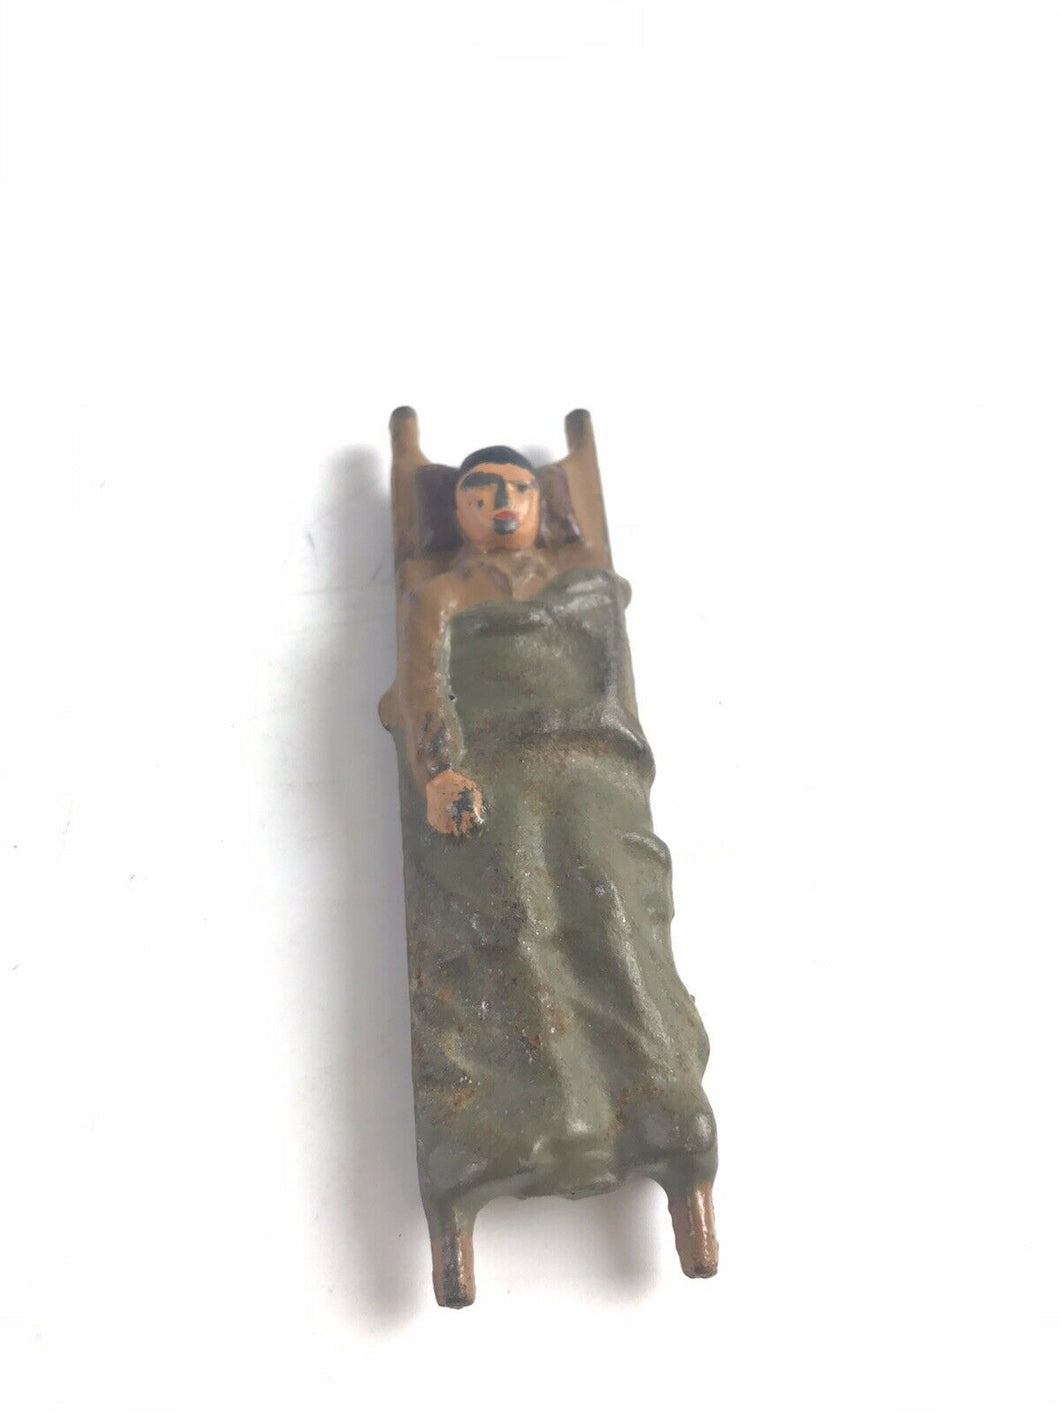 Vintage Barclay Grey Iron #96 Stretcher W/ Patient Lead Figure- 5730